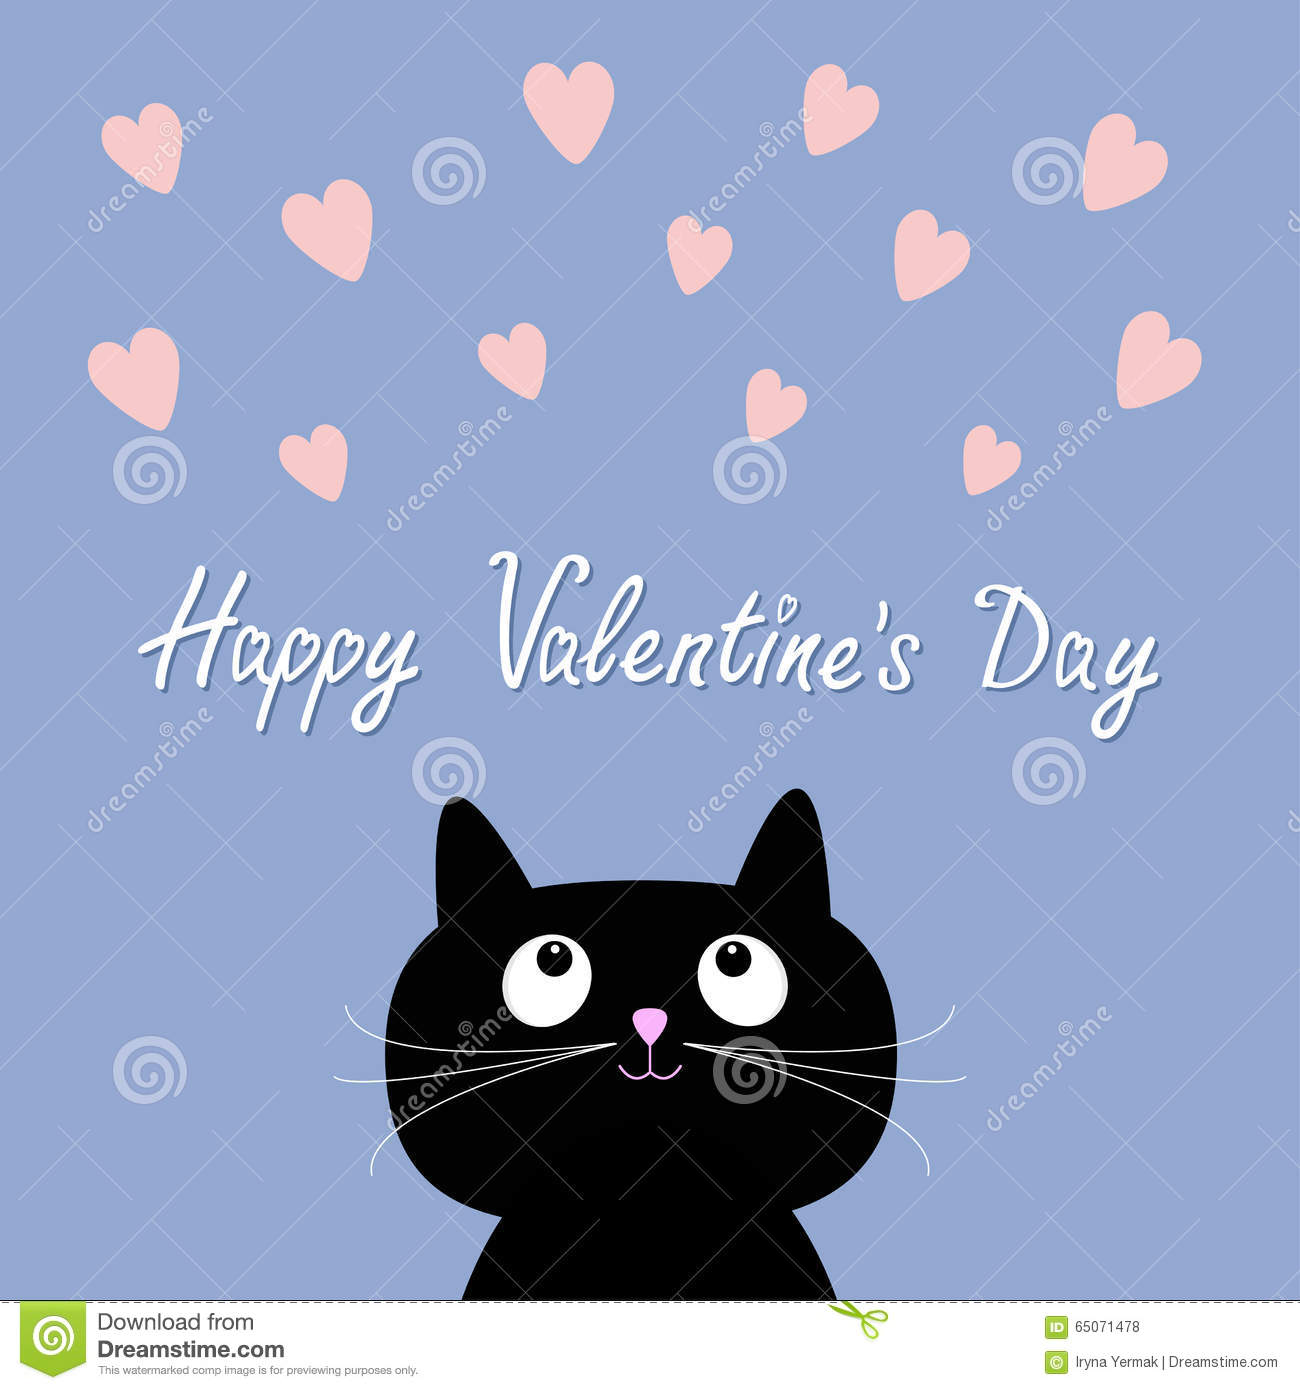 Hearts And Cute Cartoon Cat Flat Design Style Happy Valentines Day